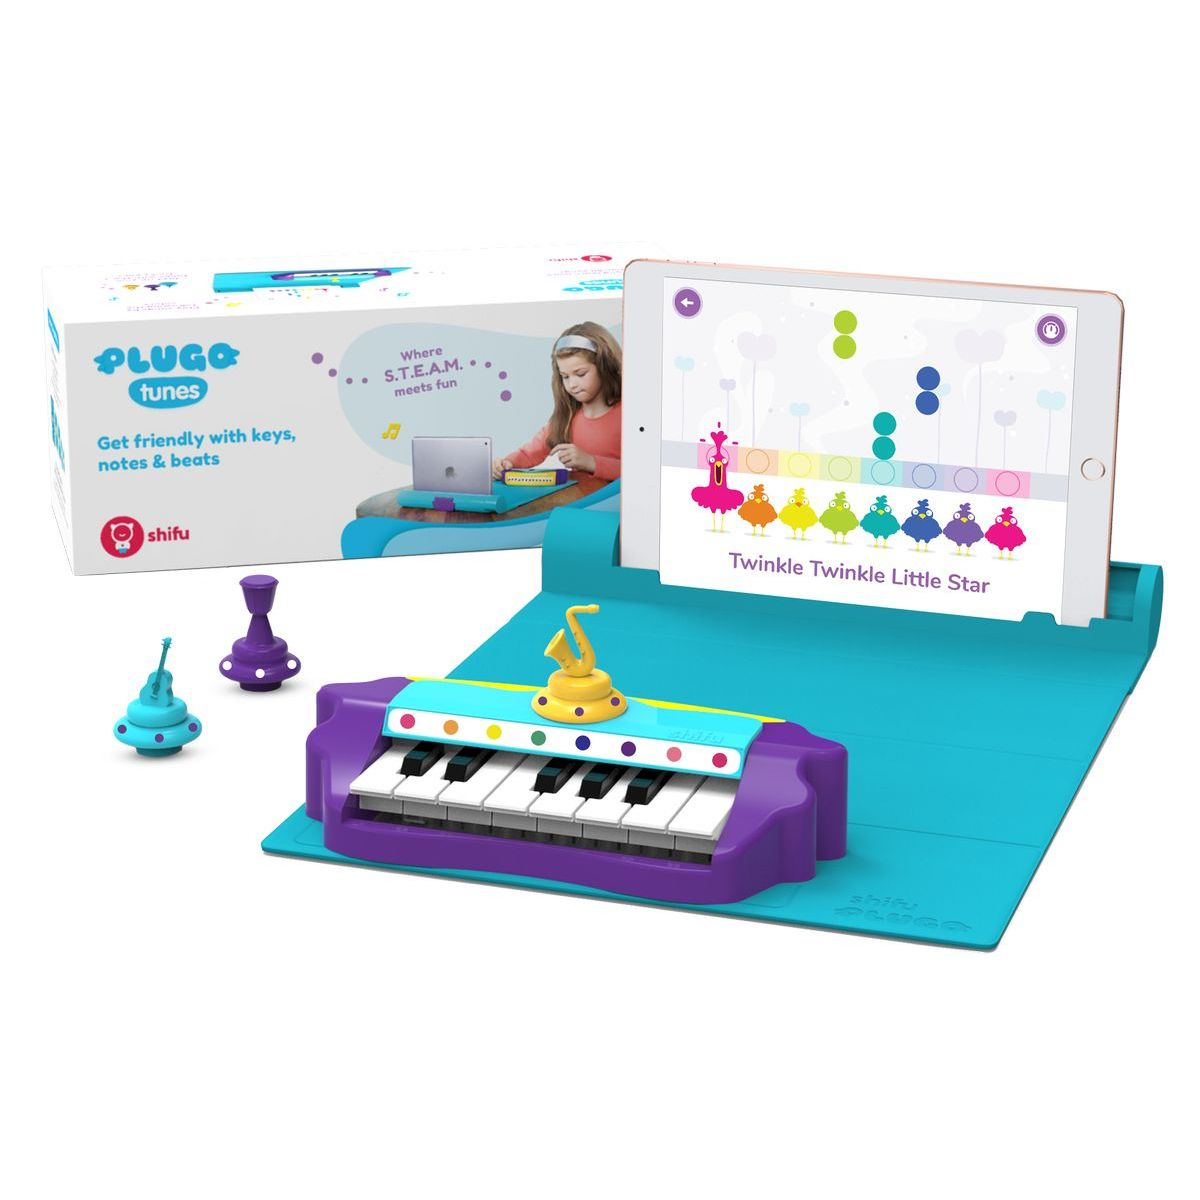 Shifu Plugo Count Piano